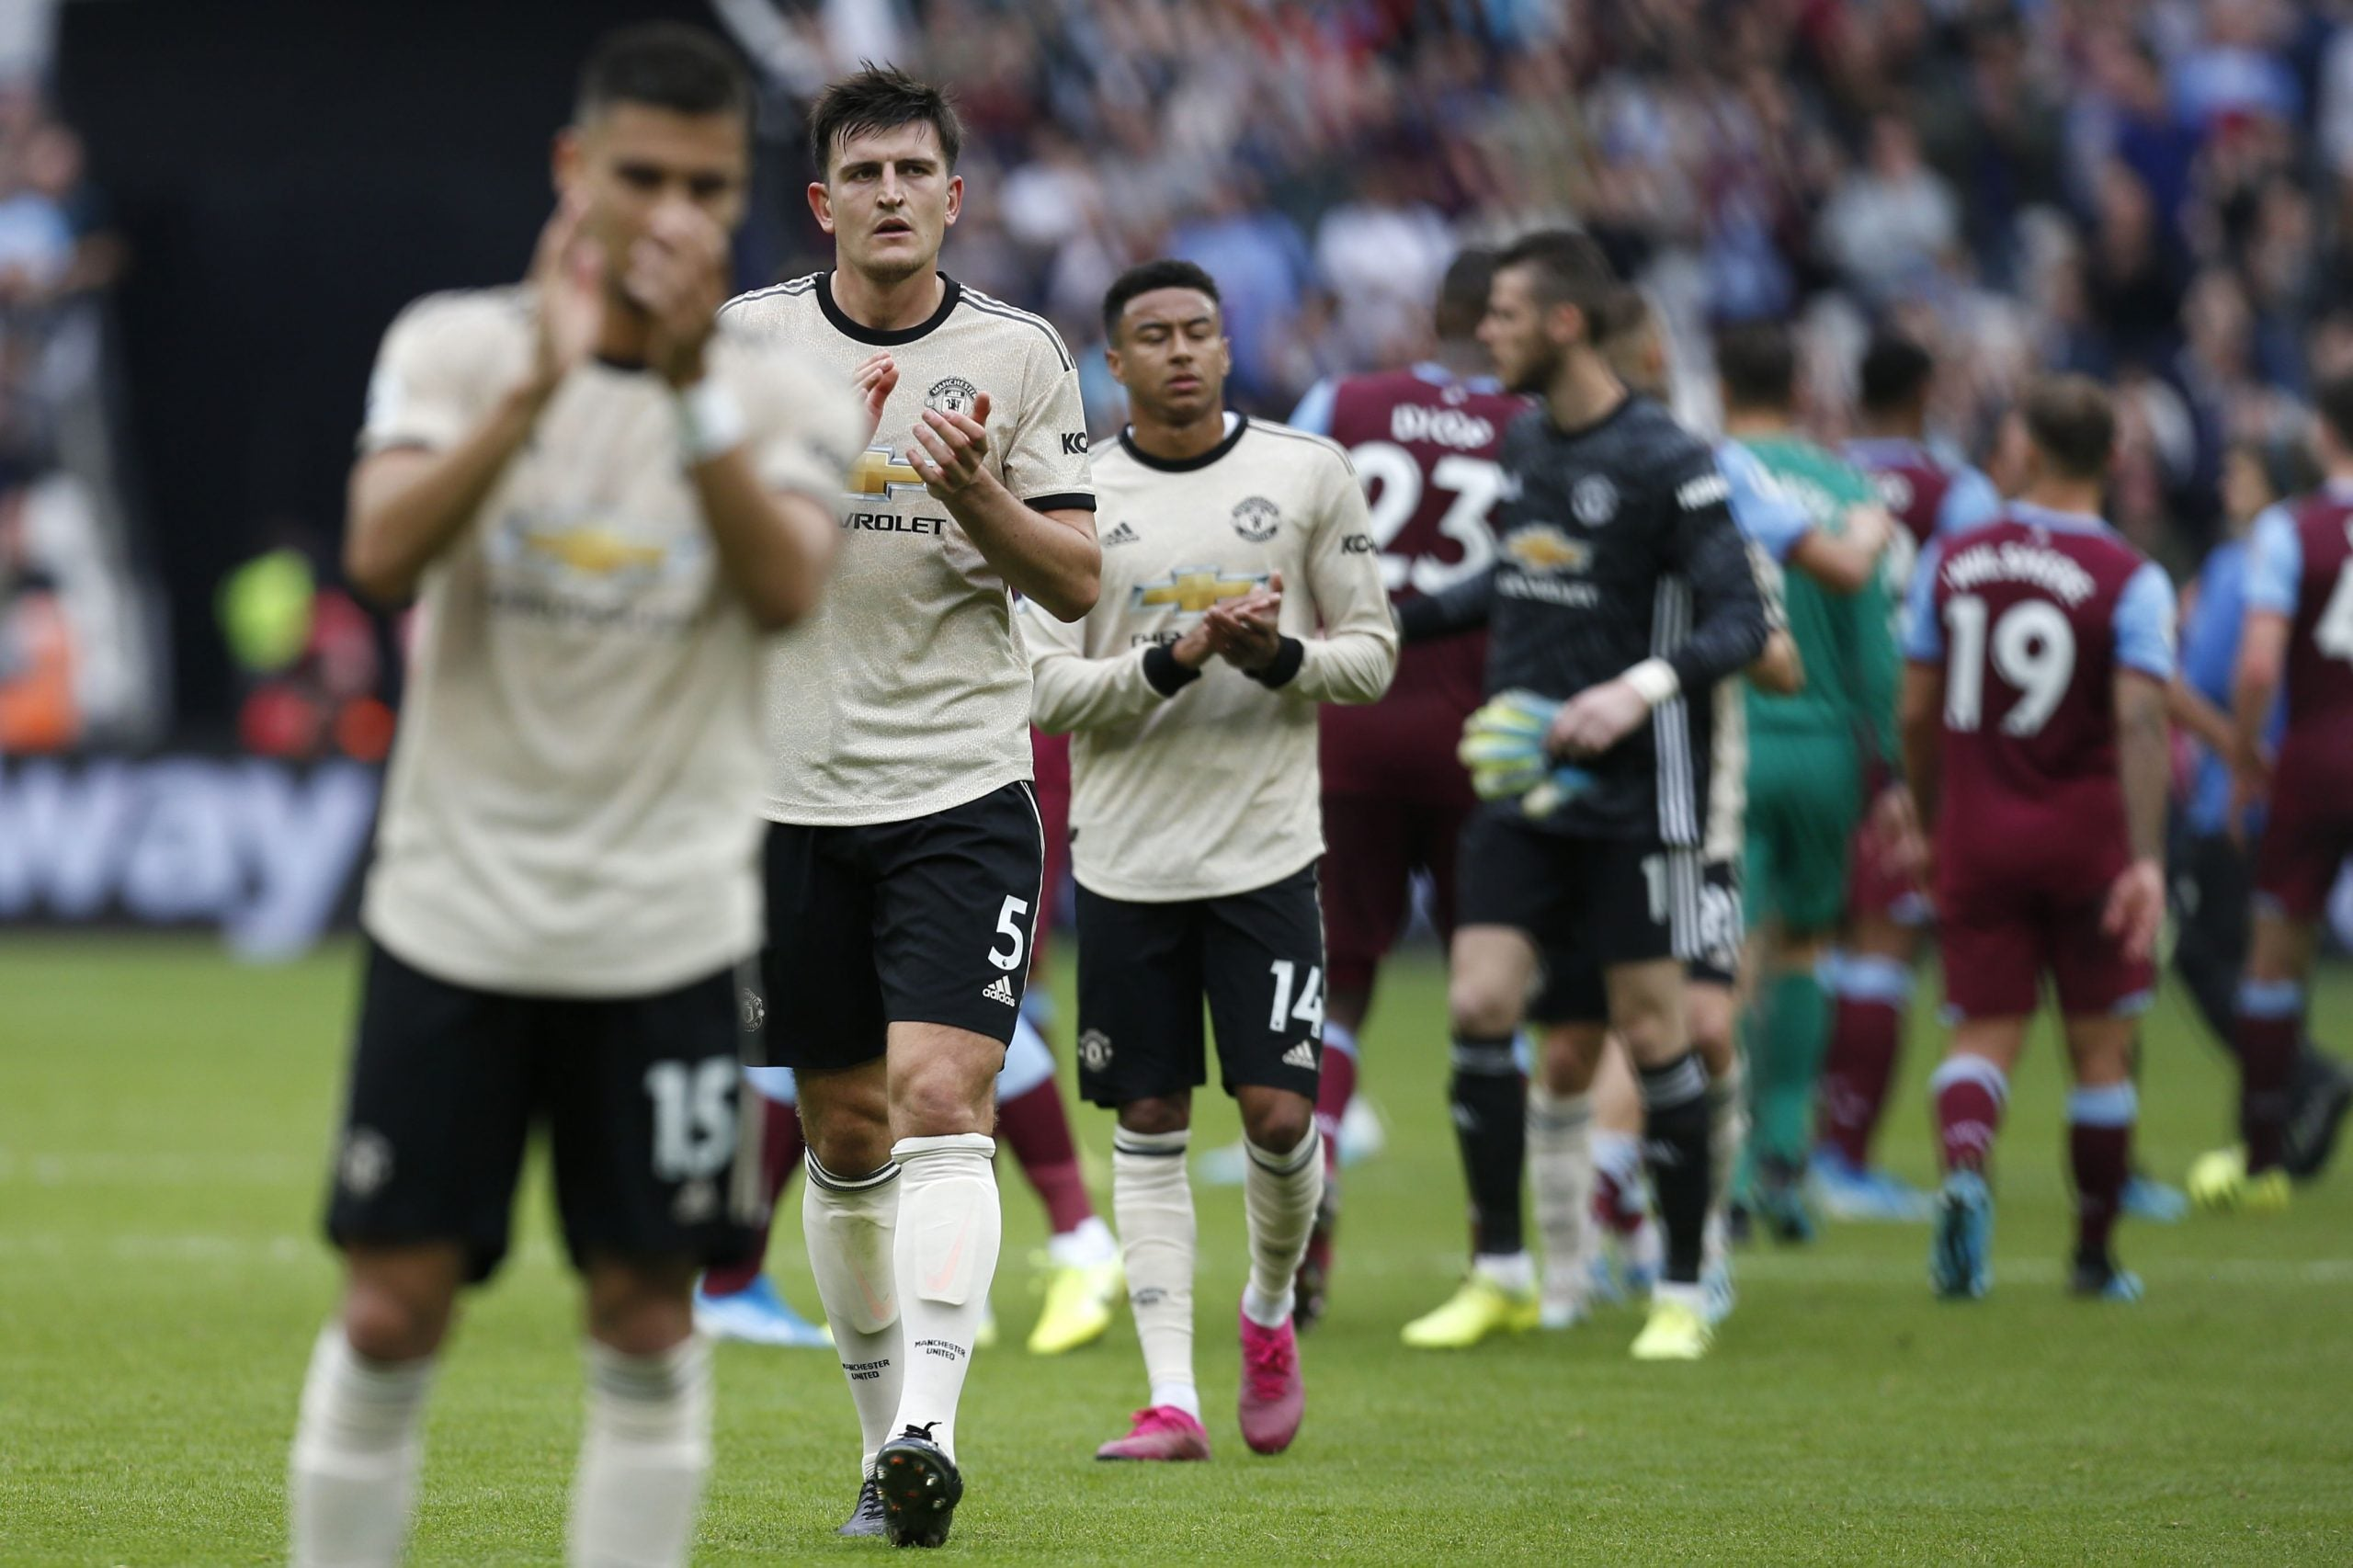 Watching West Ham defeat Man Utd, I was saddened by how far Fergie's old club have fallen